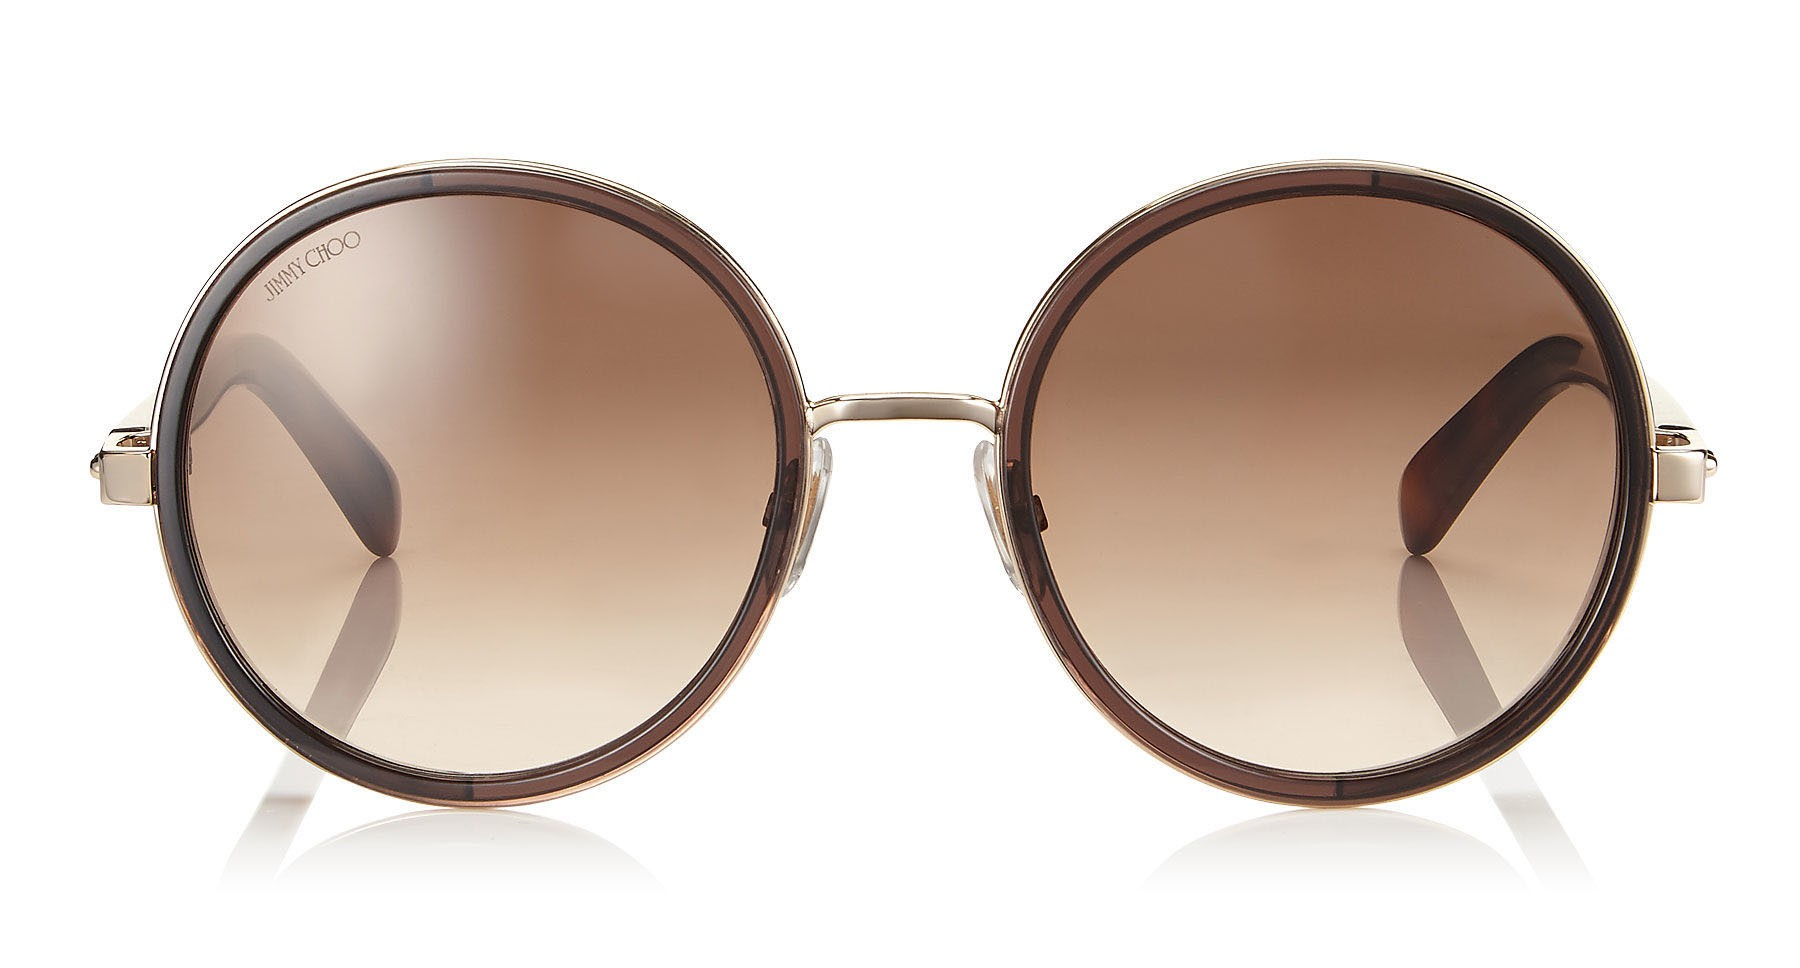 635095e23e58 Jimmy Choo - Andie - Havana Brown Acetate Round Framed Sunglasses with Gold  Silver Crystal Fabric Detailing - Jimmy Choo Eyewear